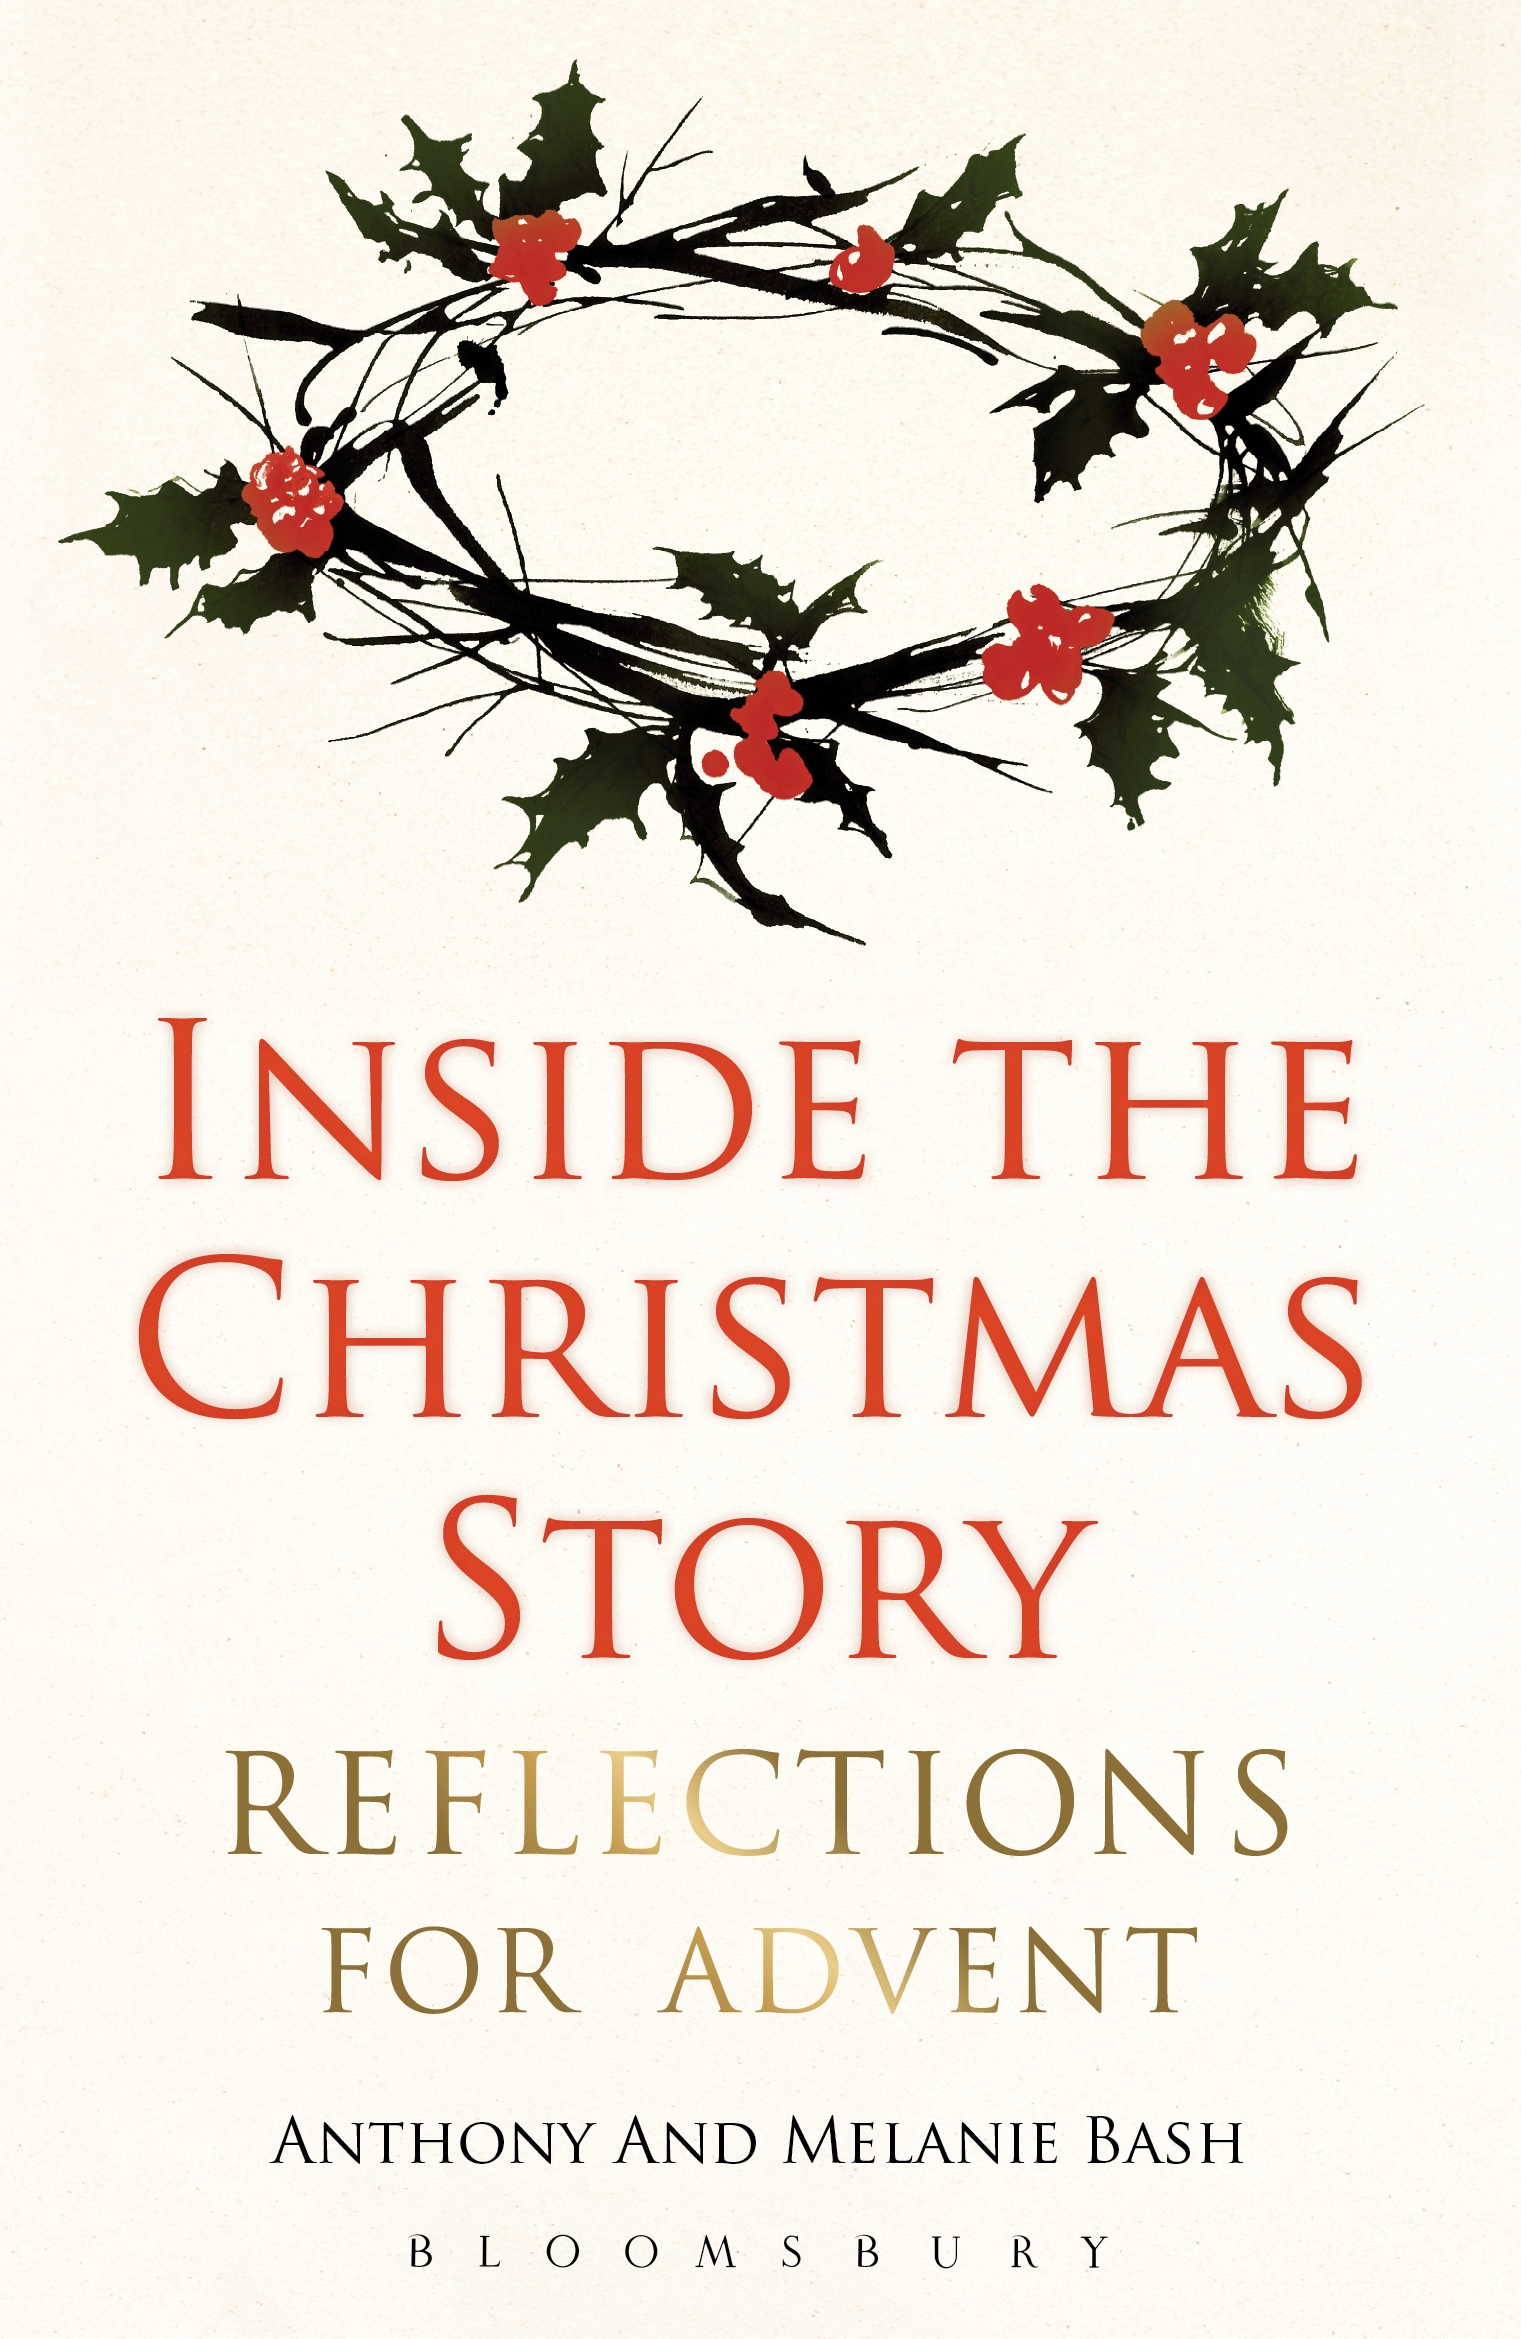 Inside the Christmas Story Reflections for Advent